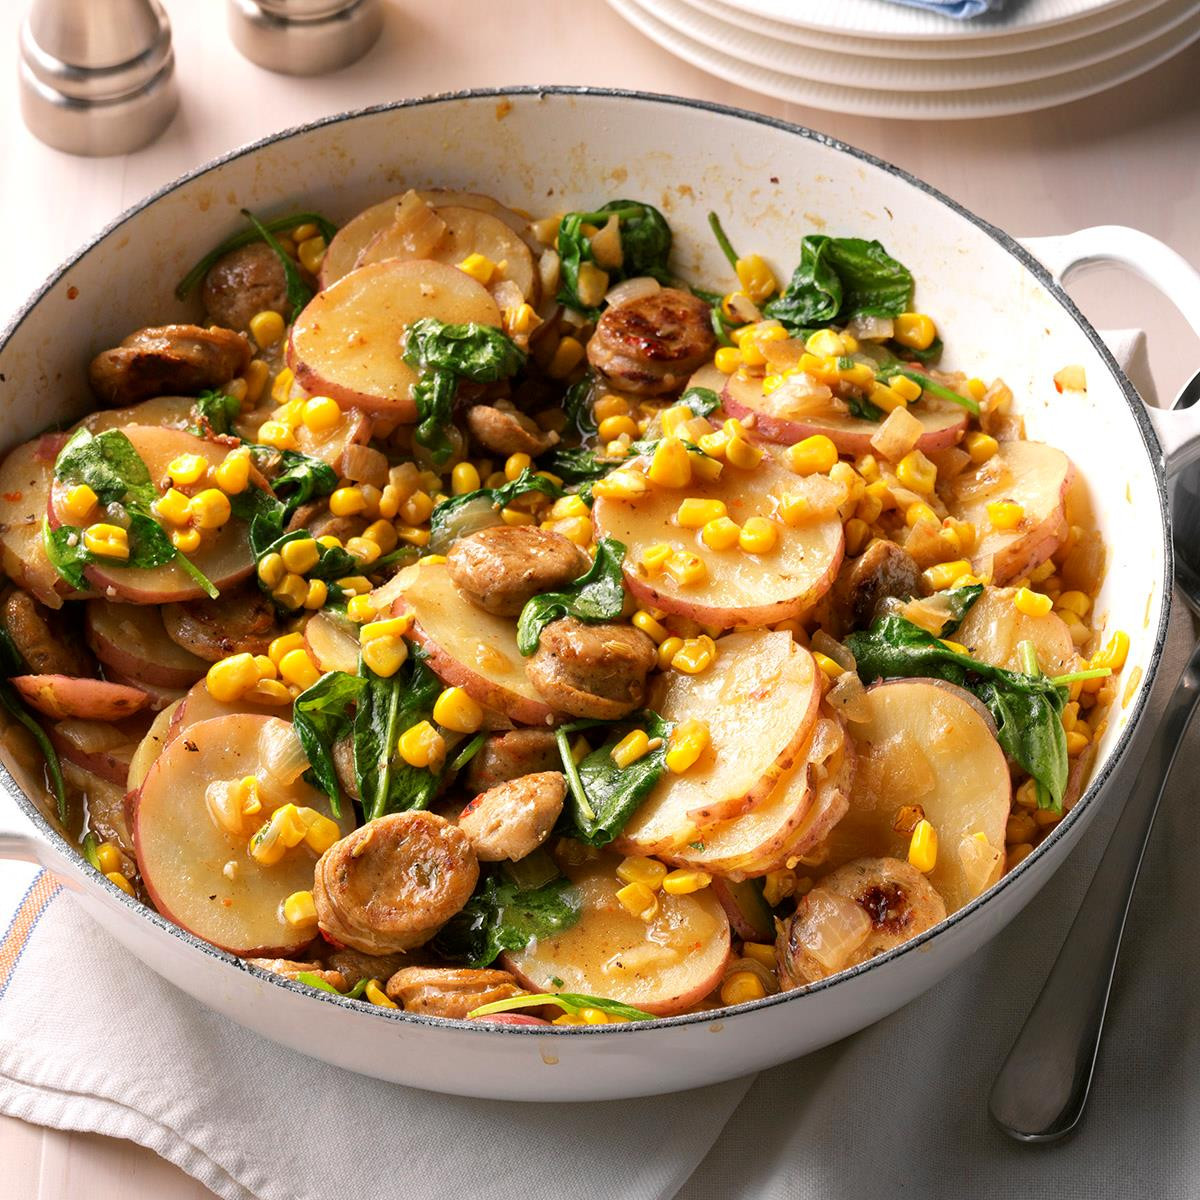 What To Make For Dinner Vegetarian  88 e Pot Meals for Busy Days